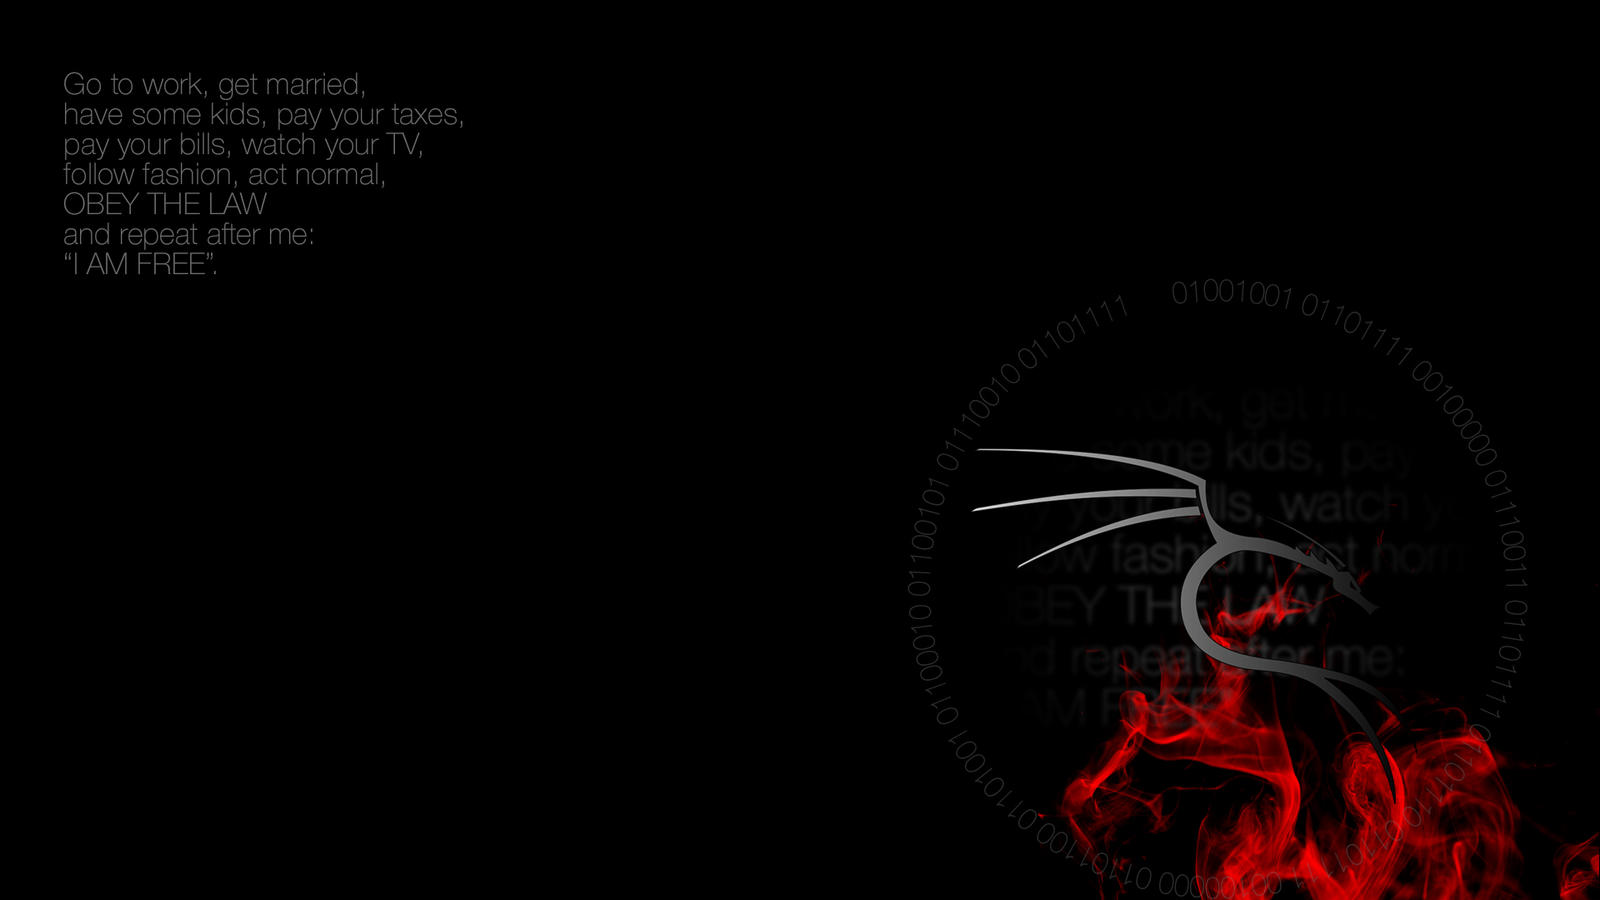 kali linux wallpaper hd - photo #7